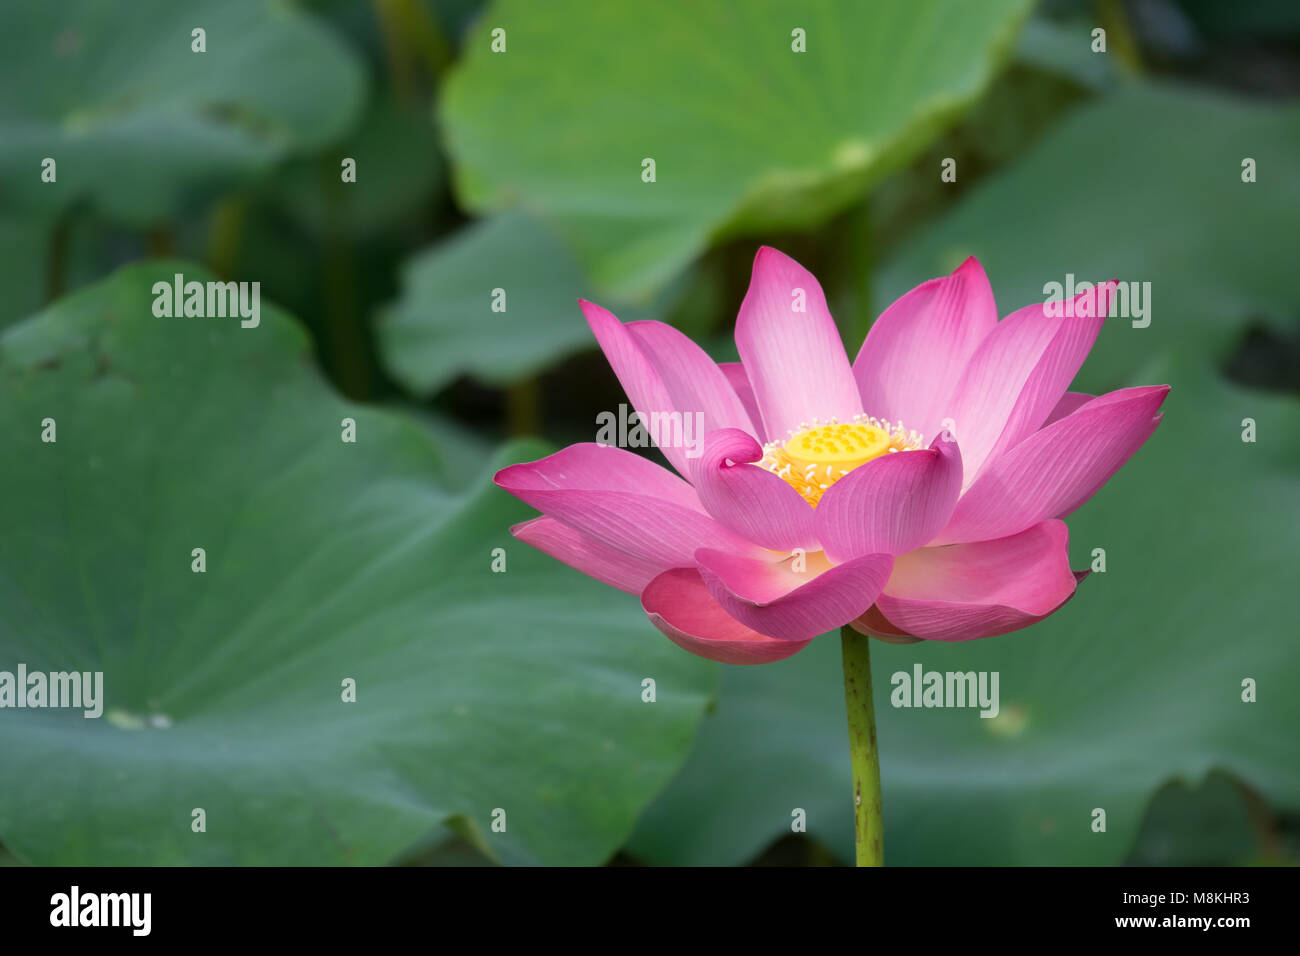 Pink lotus flower royalty high quality free stock footage of a pink lotus flower royalty high quality free stock footage of a beautiful pink lotus flower the background of the pink lotus flowers is green leaf izmirmasajfo Choice Image